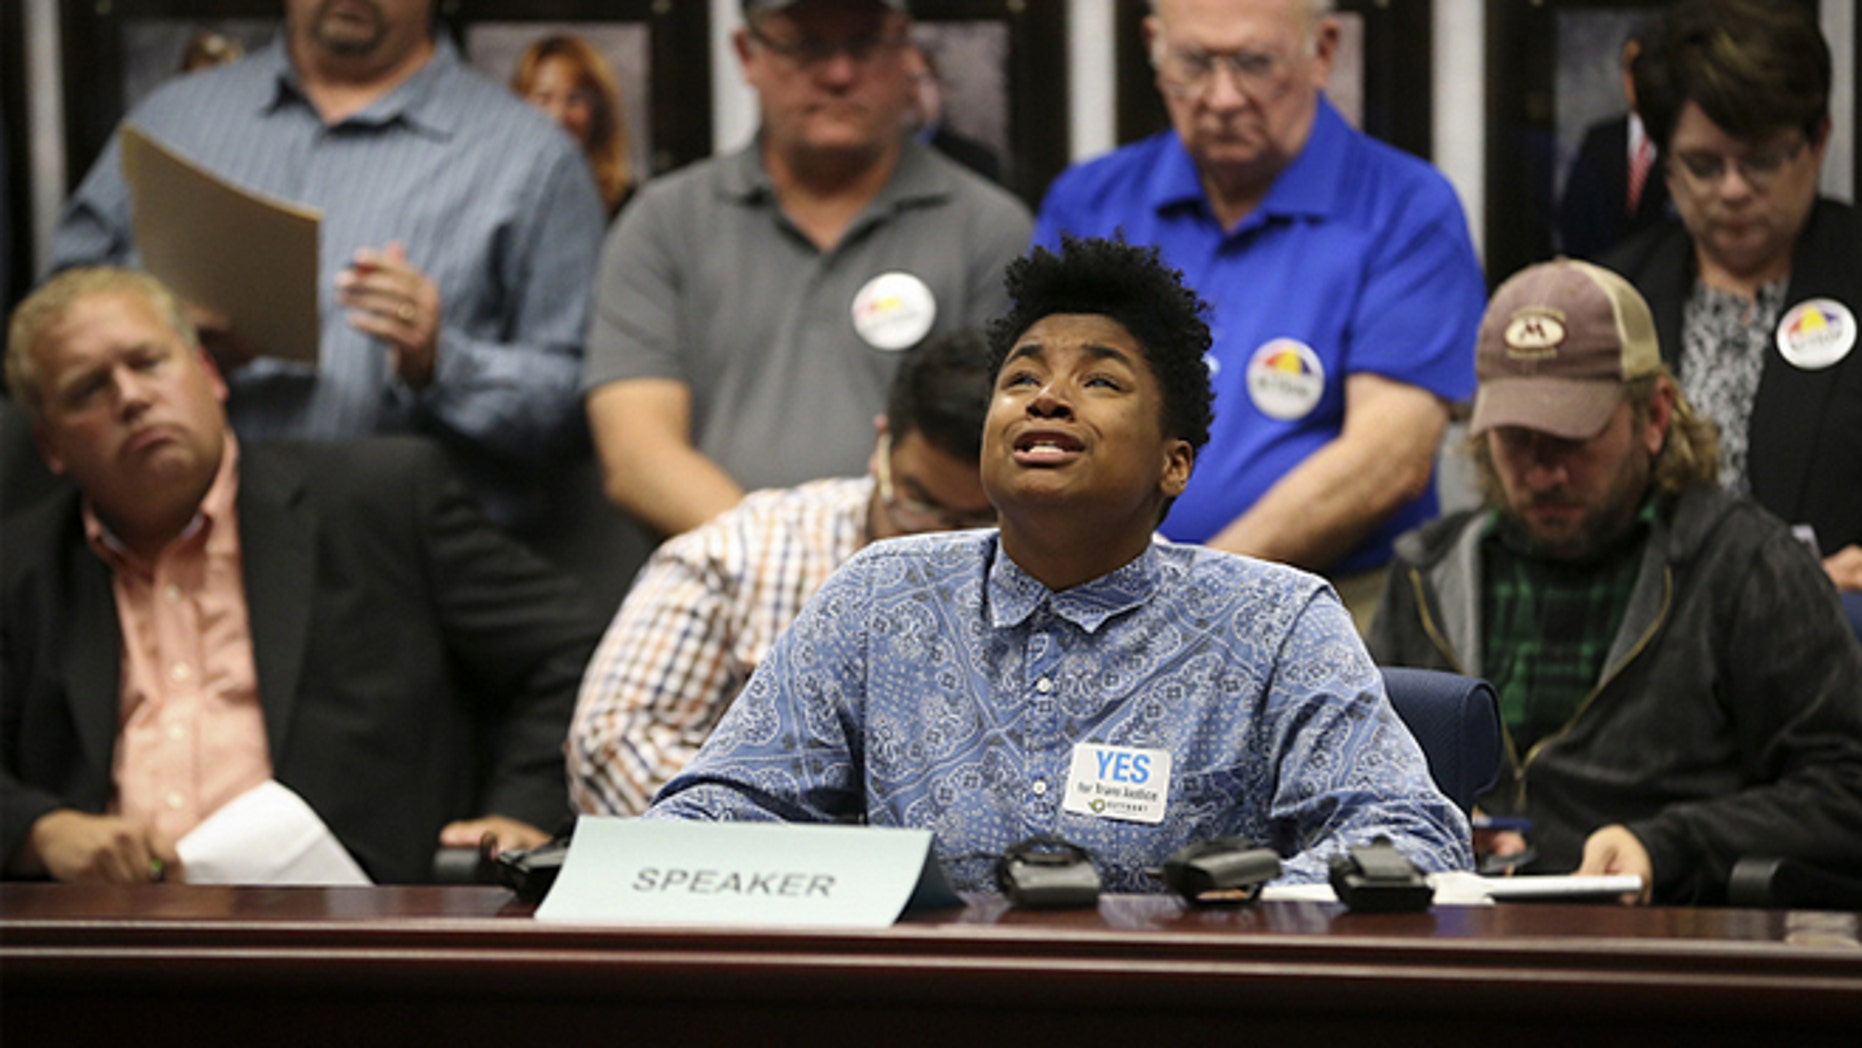 OCT. 1: Zeam Porter talks about the years she played basketball on the girls team and how it always felt like the wrong team, during the Minnesota State High School League's public hearing on the proposed transgender policy.